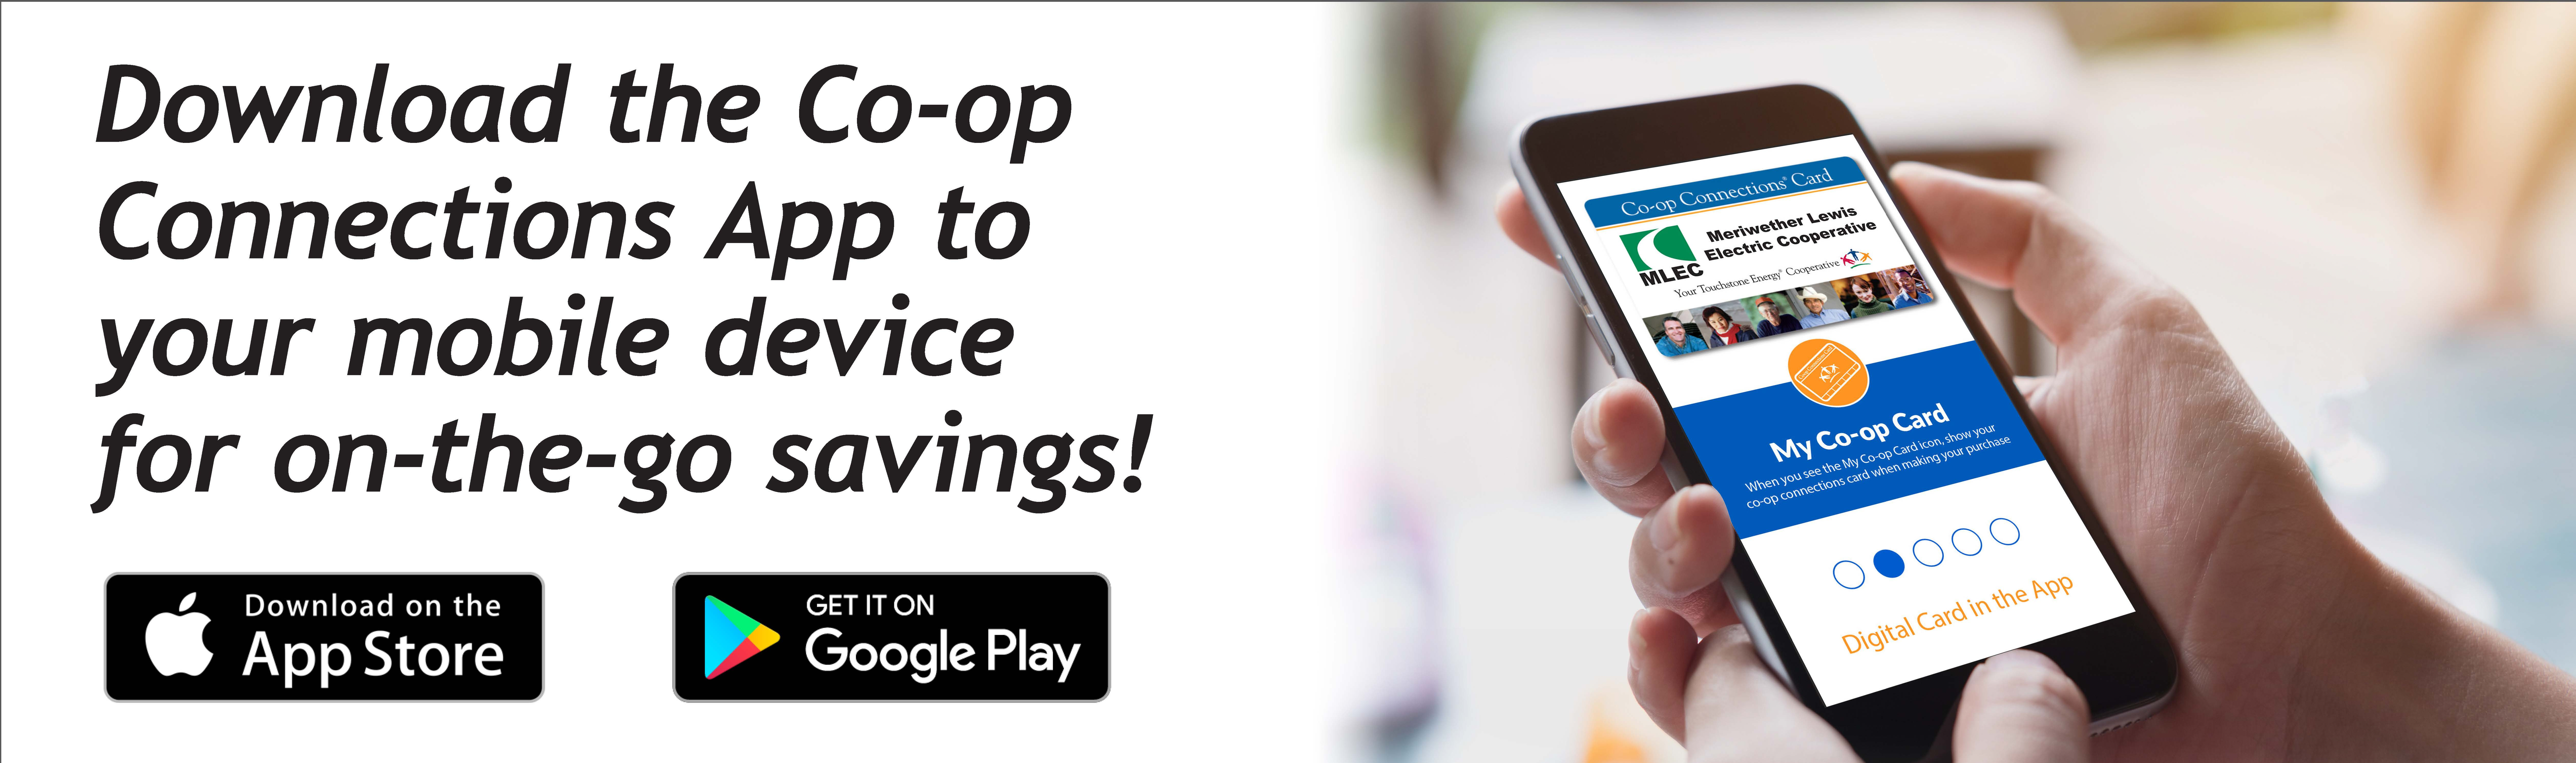 Download the Co-op Connections App to your mobile device for on-the-go savings!